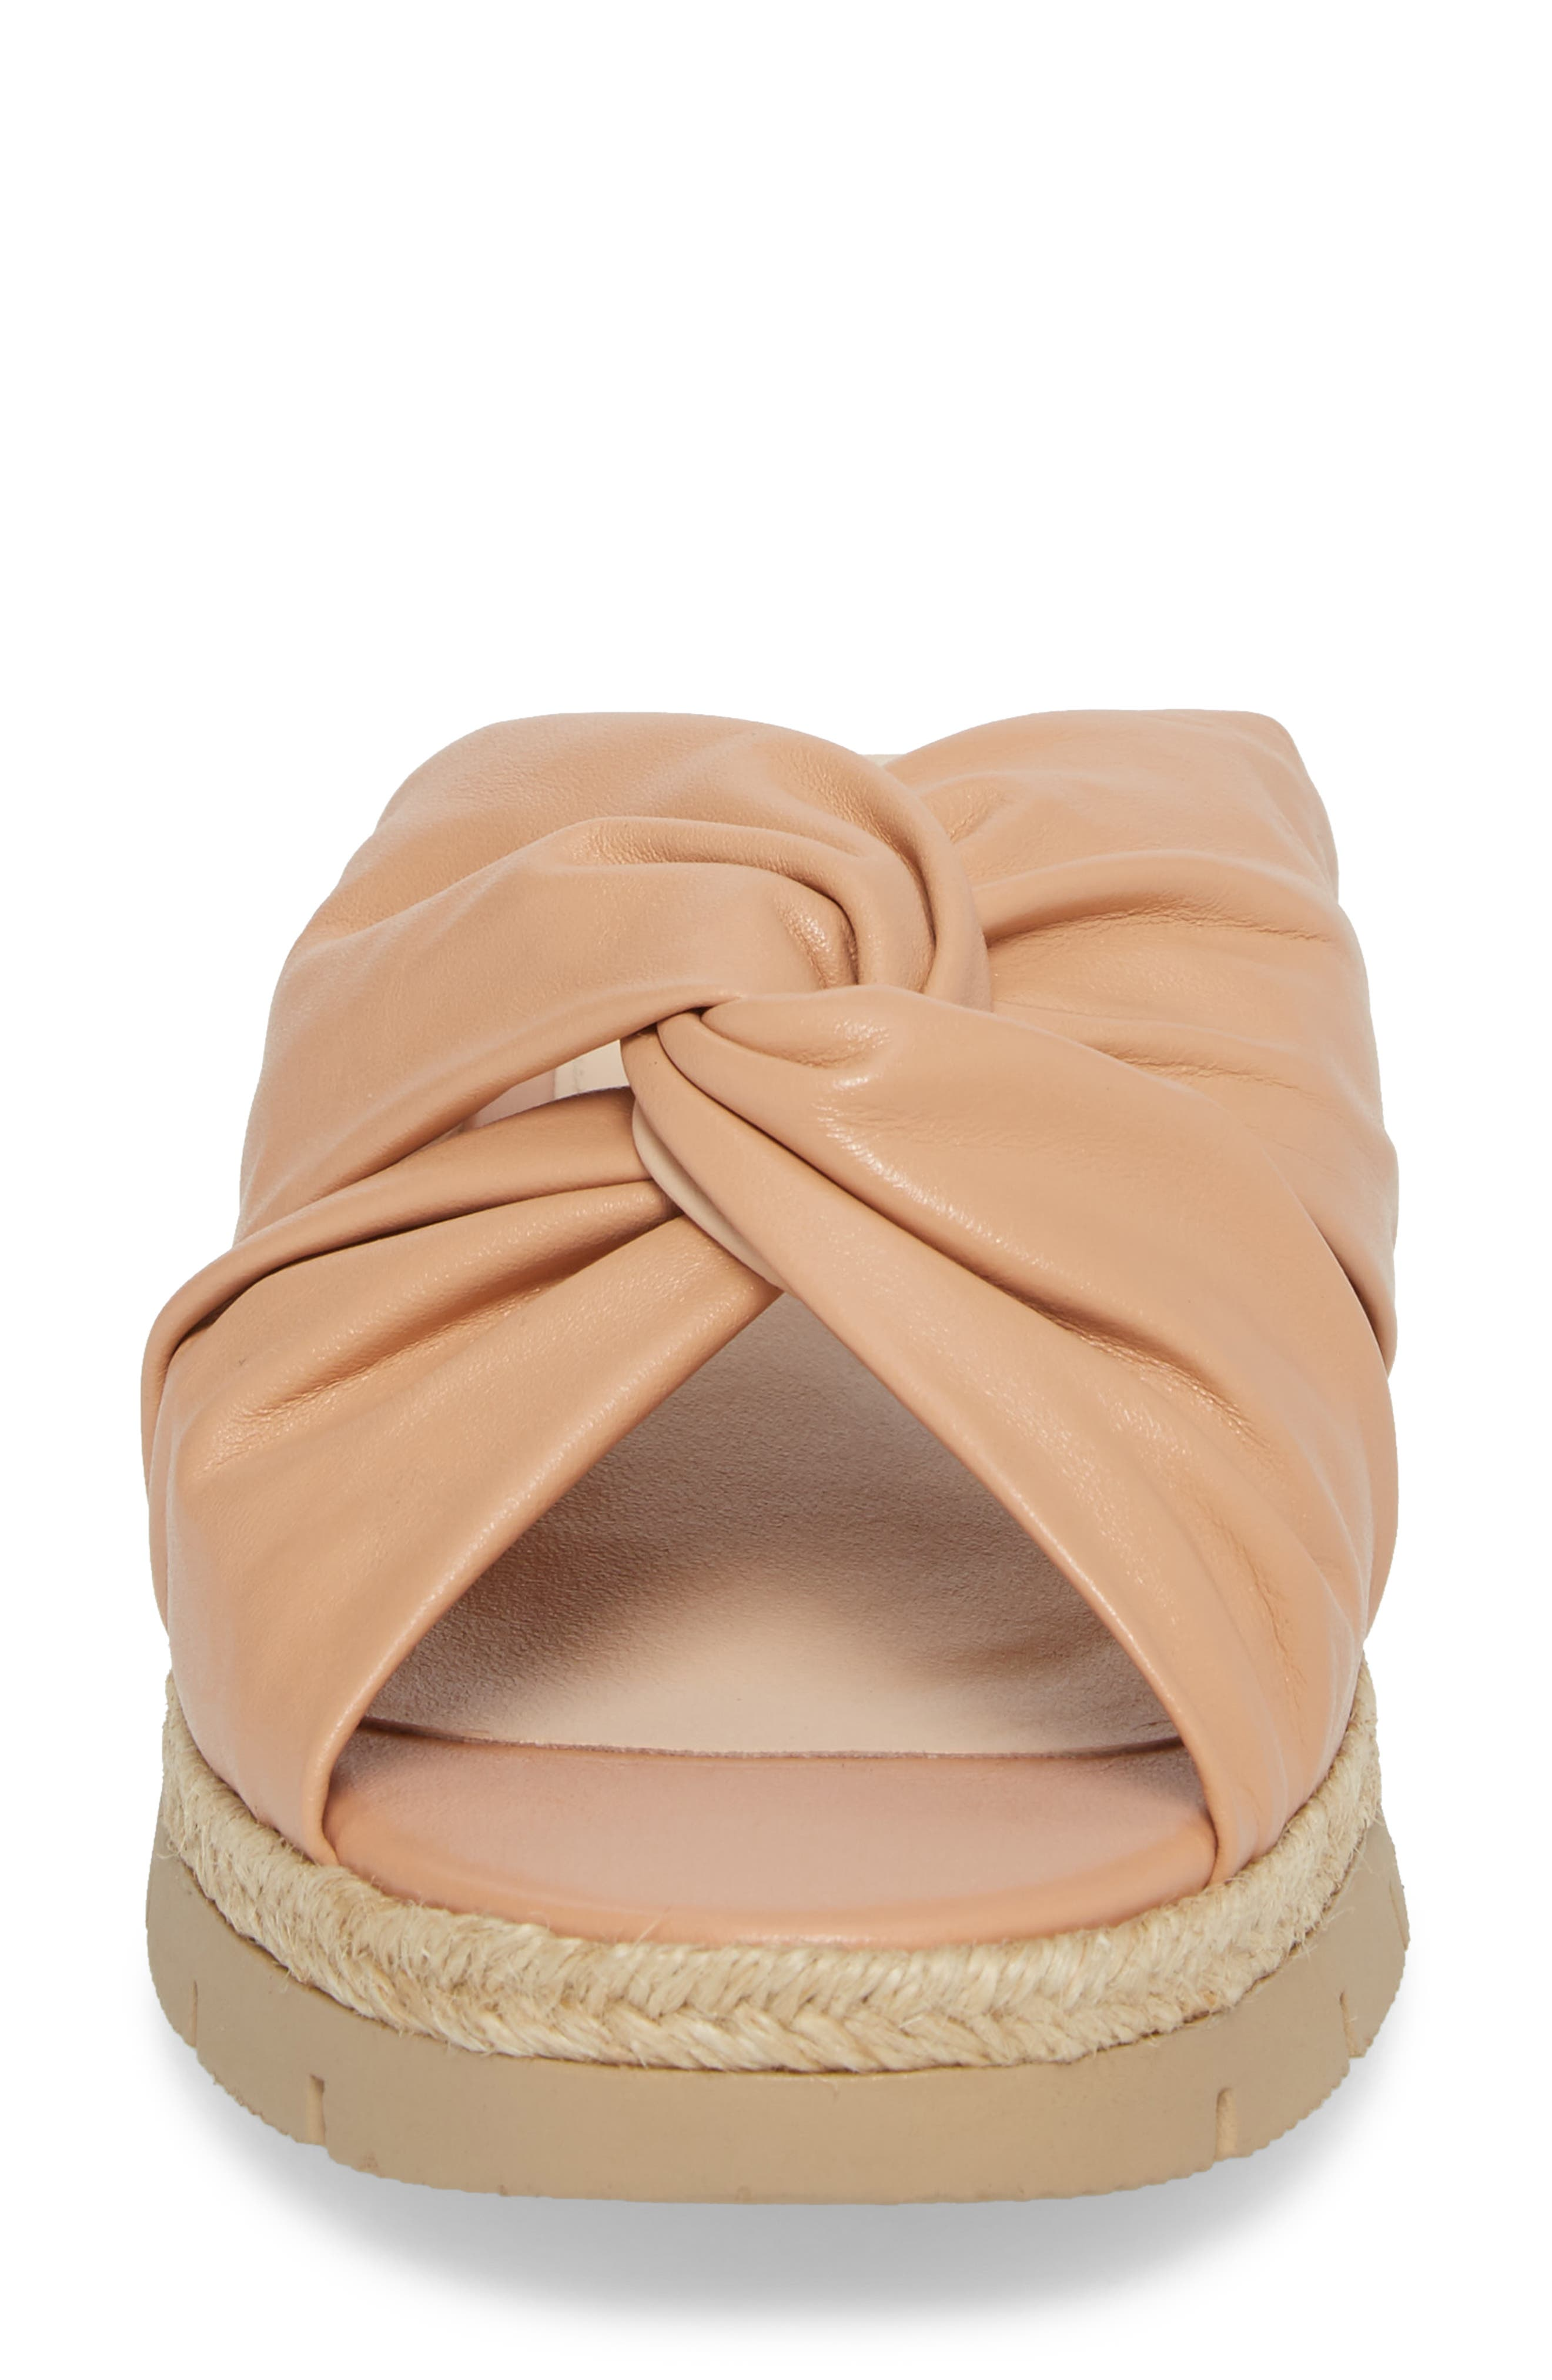 KLUB NICO, Charlie Slide Sandal, Alternate thumbnail 4, color, PEACH LEATHER